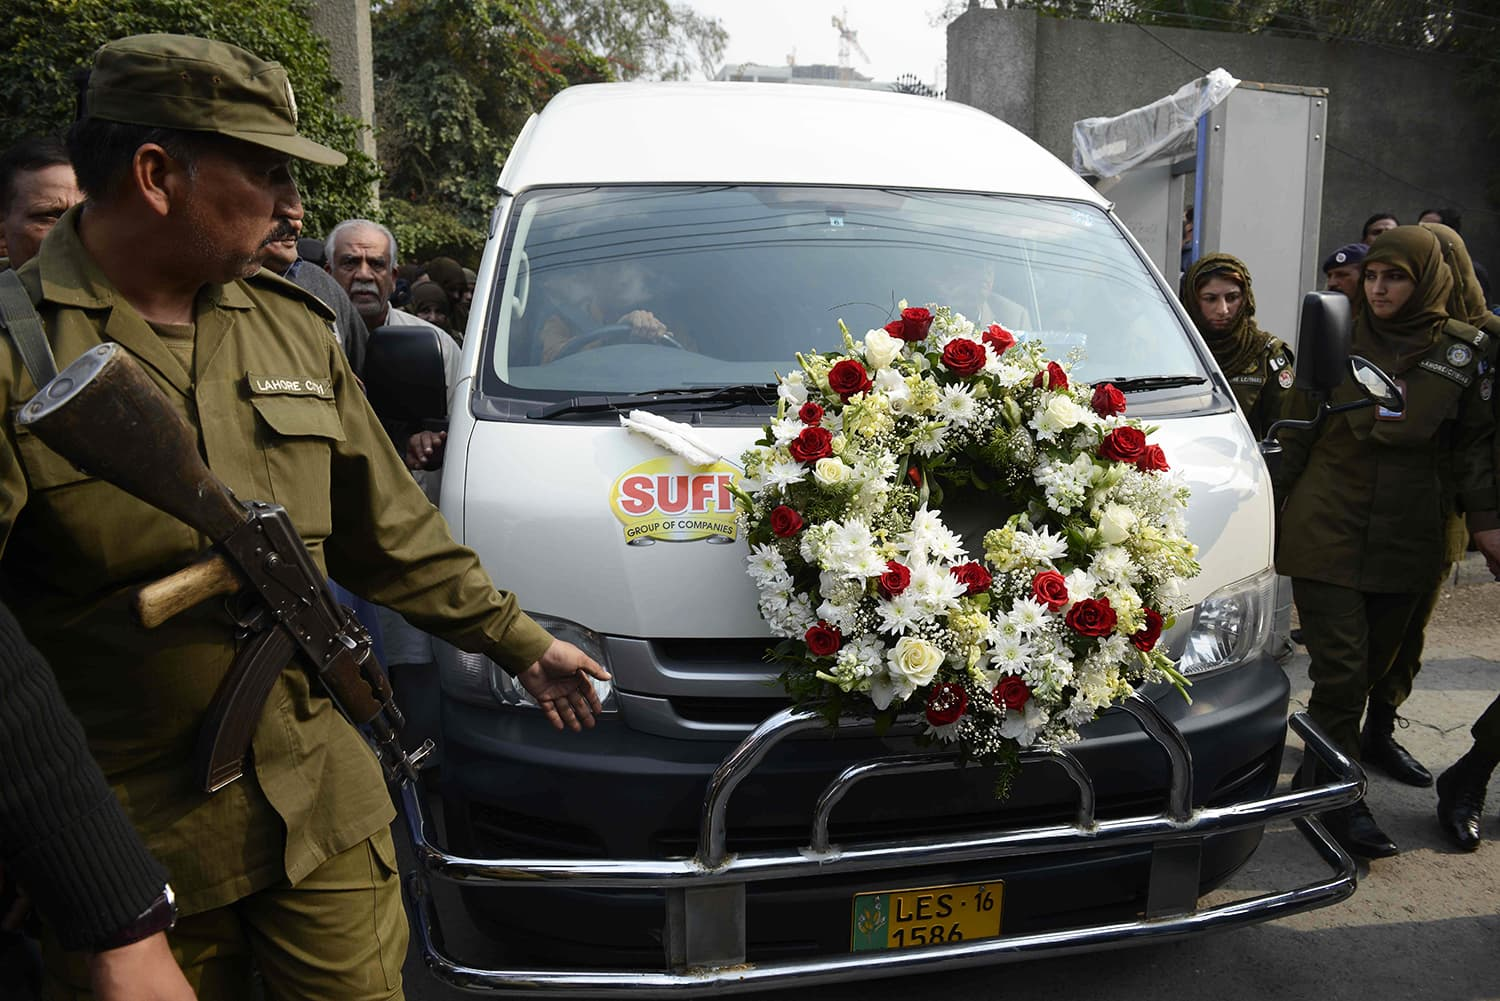 Policemen escort a vehicle carrying the coffin of lawyer and rights advocate Asma Jahangir during her funeral in Lahore on February 13  AFP